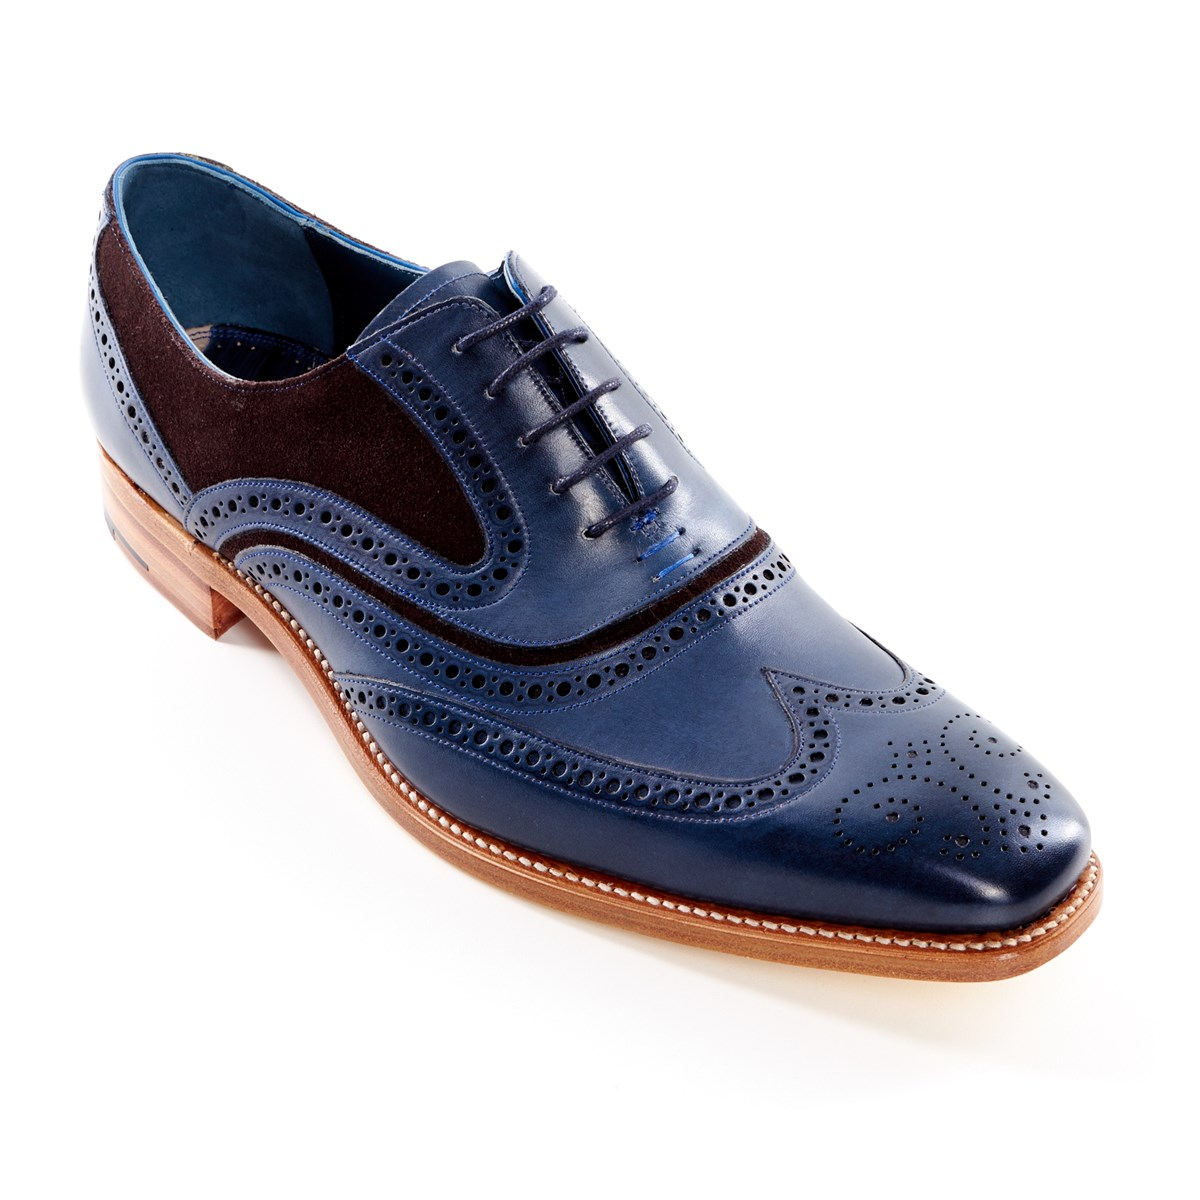 be4c902a5574d Dress Brogue McClean Hand Painted Navy and Brown Suede by Barker - The Kilt  Store